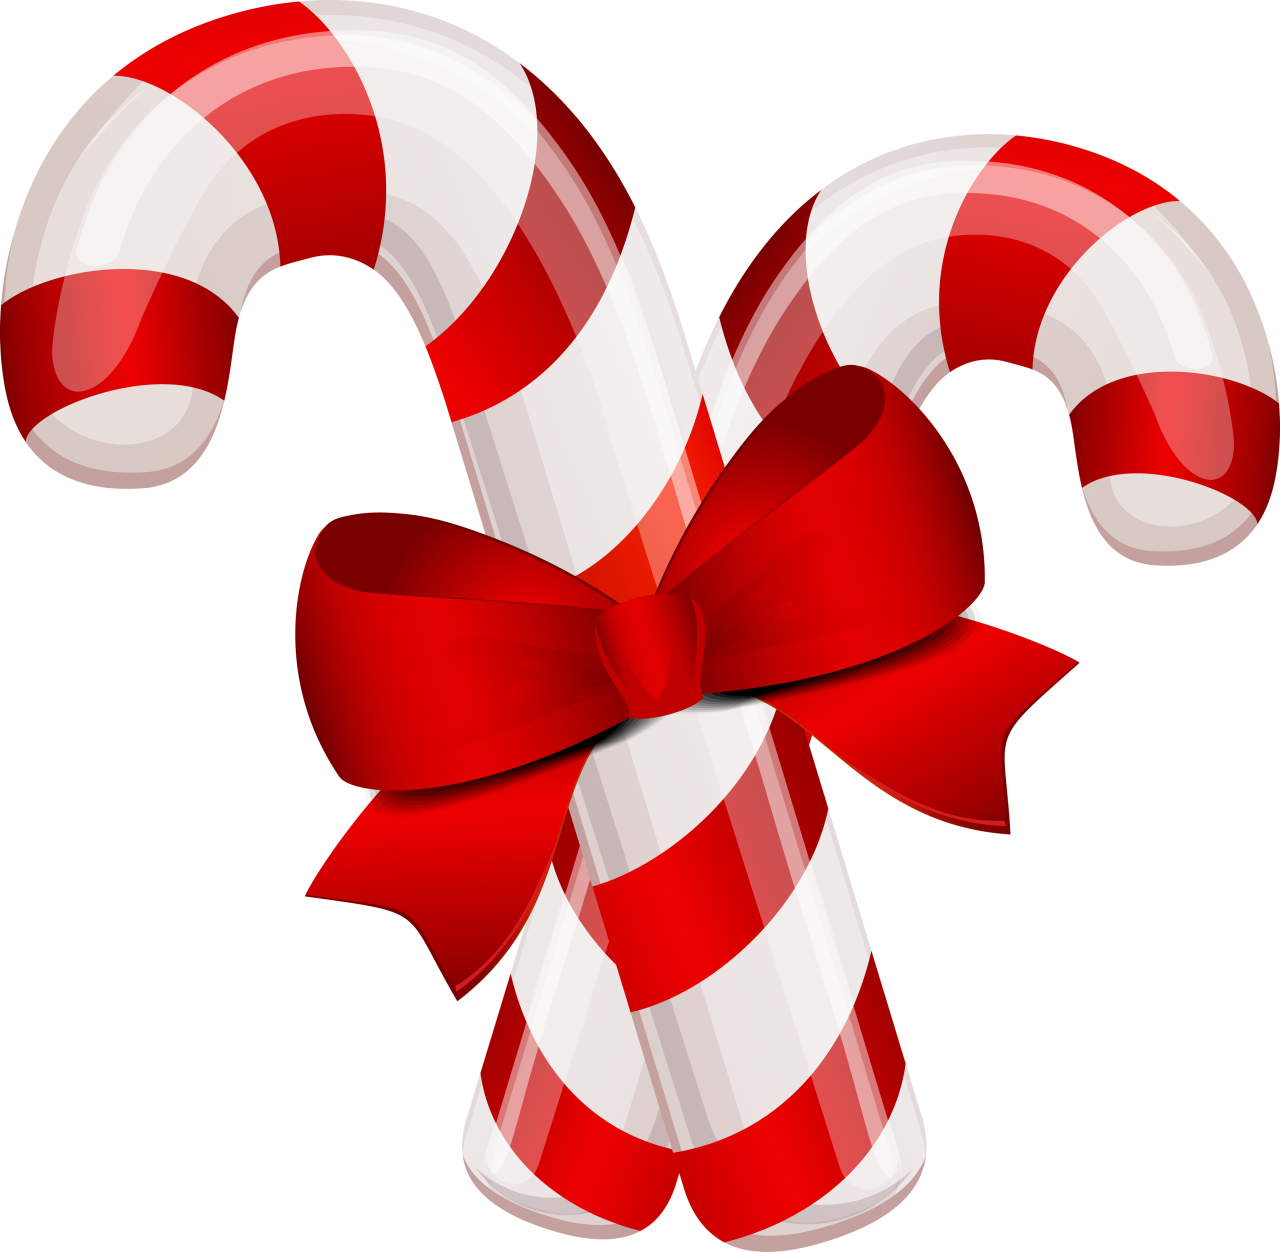 Candy Canes with Bow PNG Image